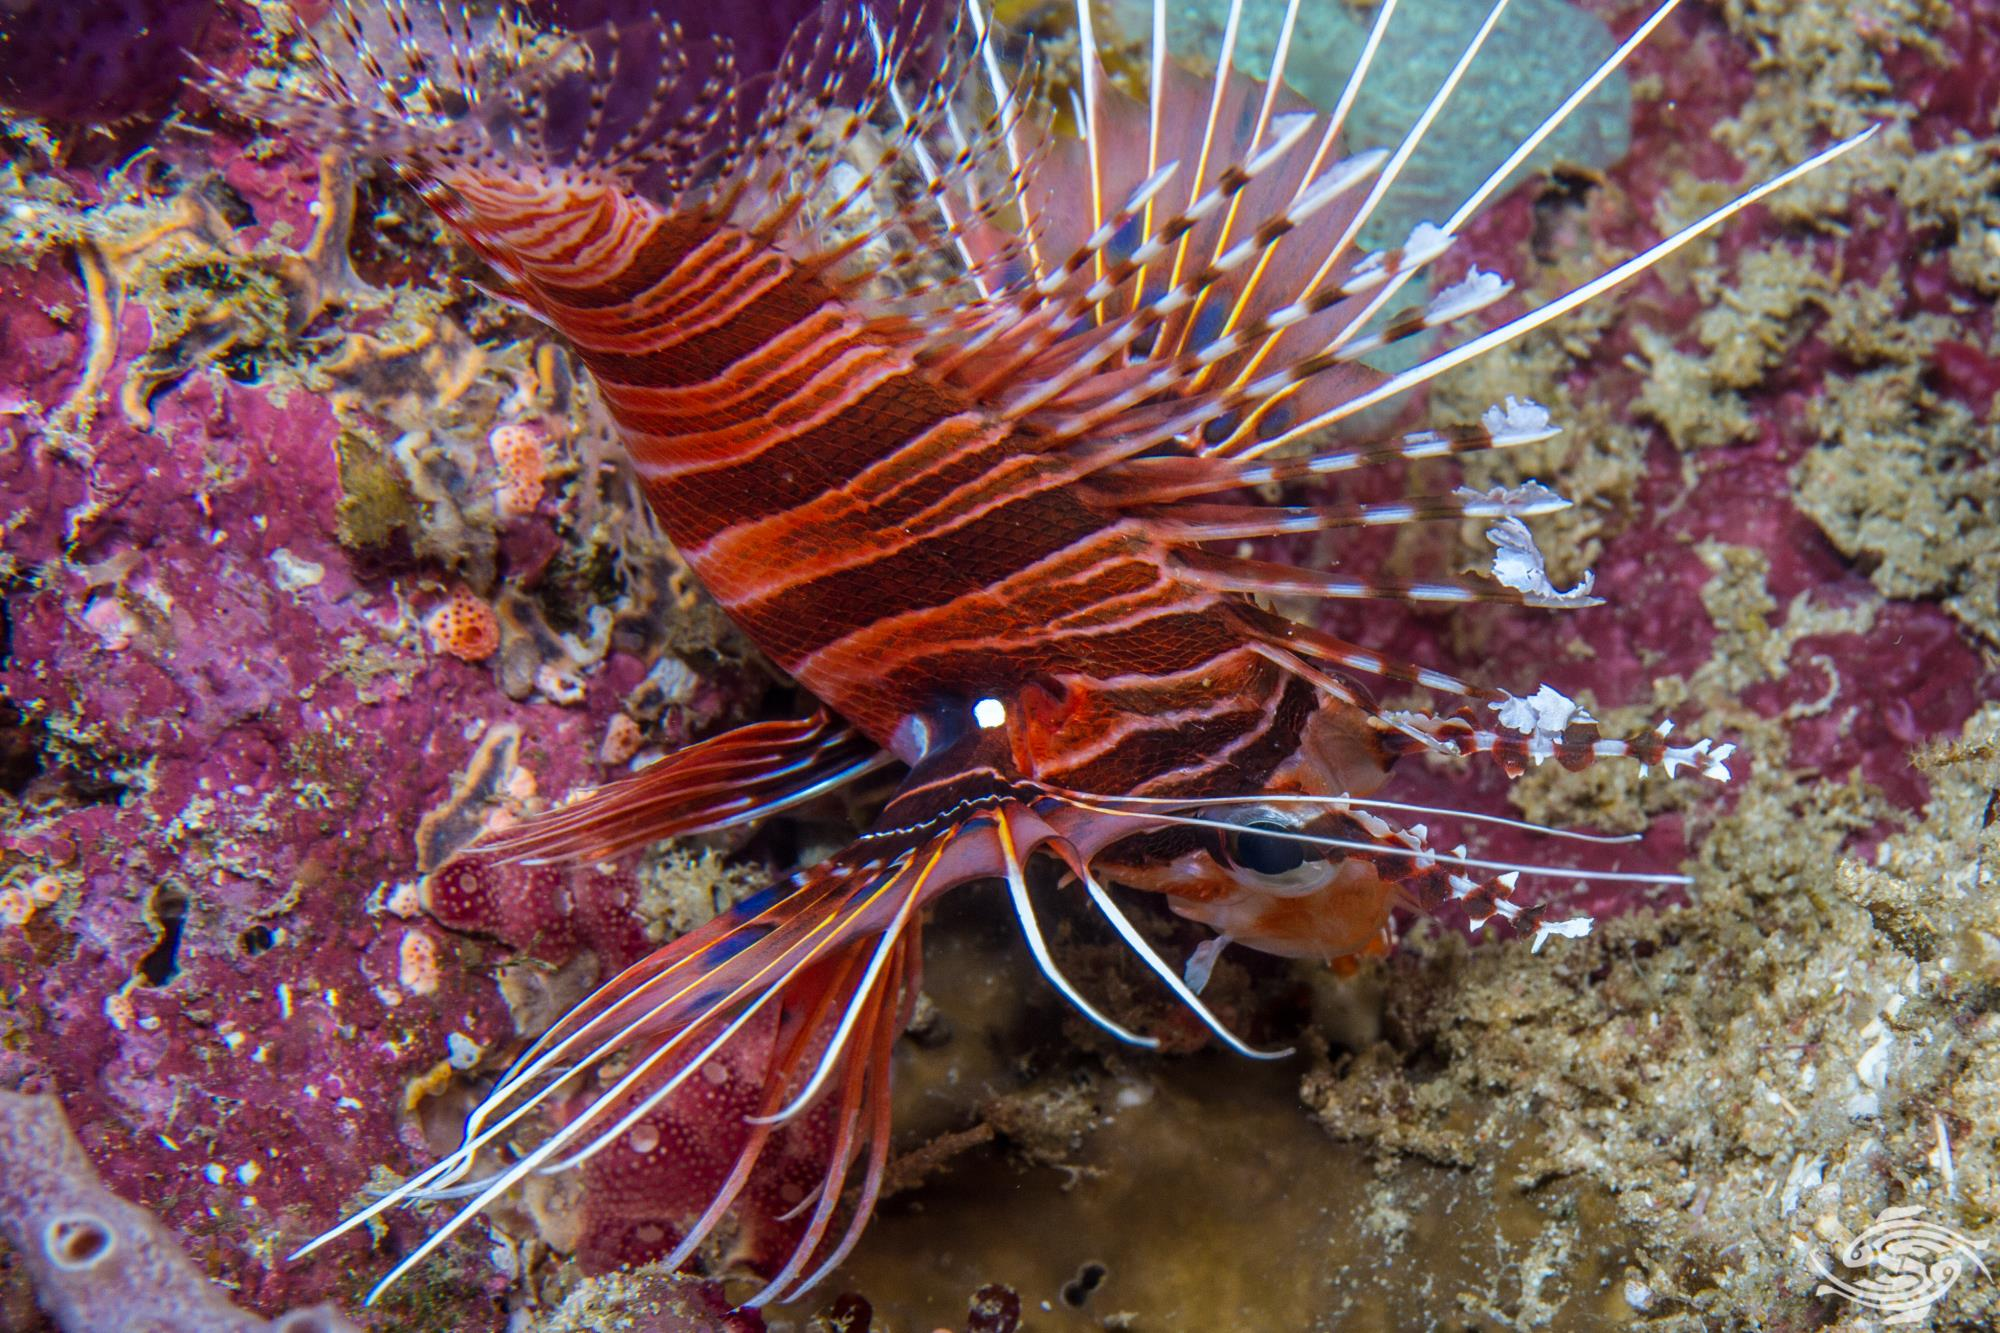 Spotfin Lionfish-Facts and Photographs - Seaunseen